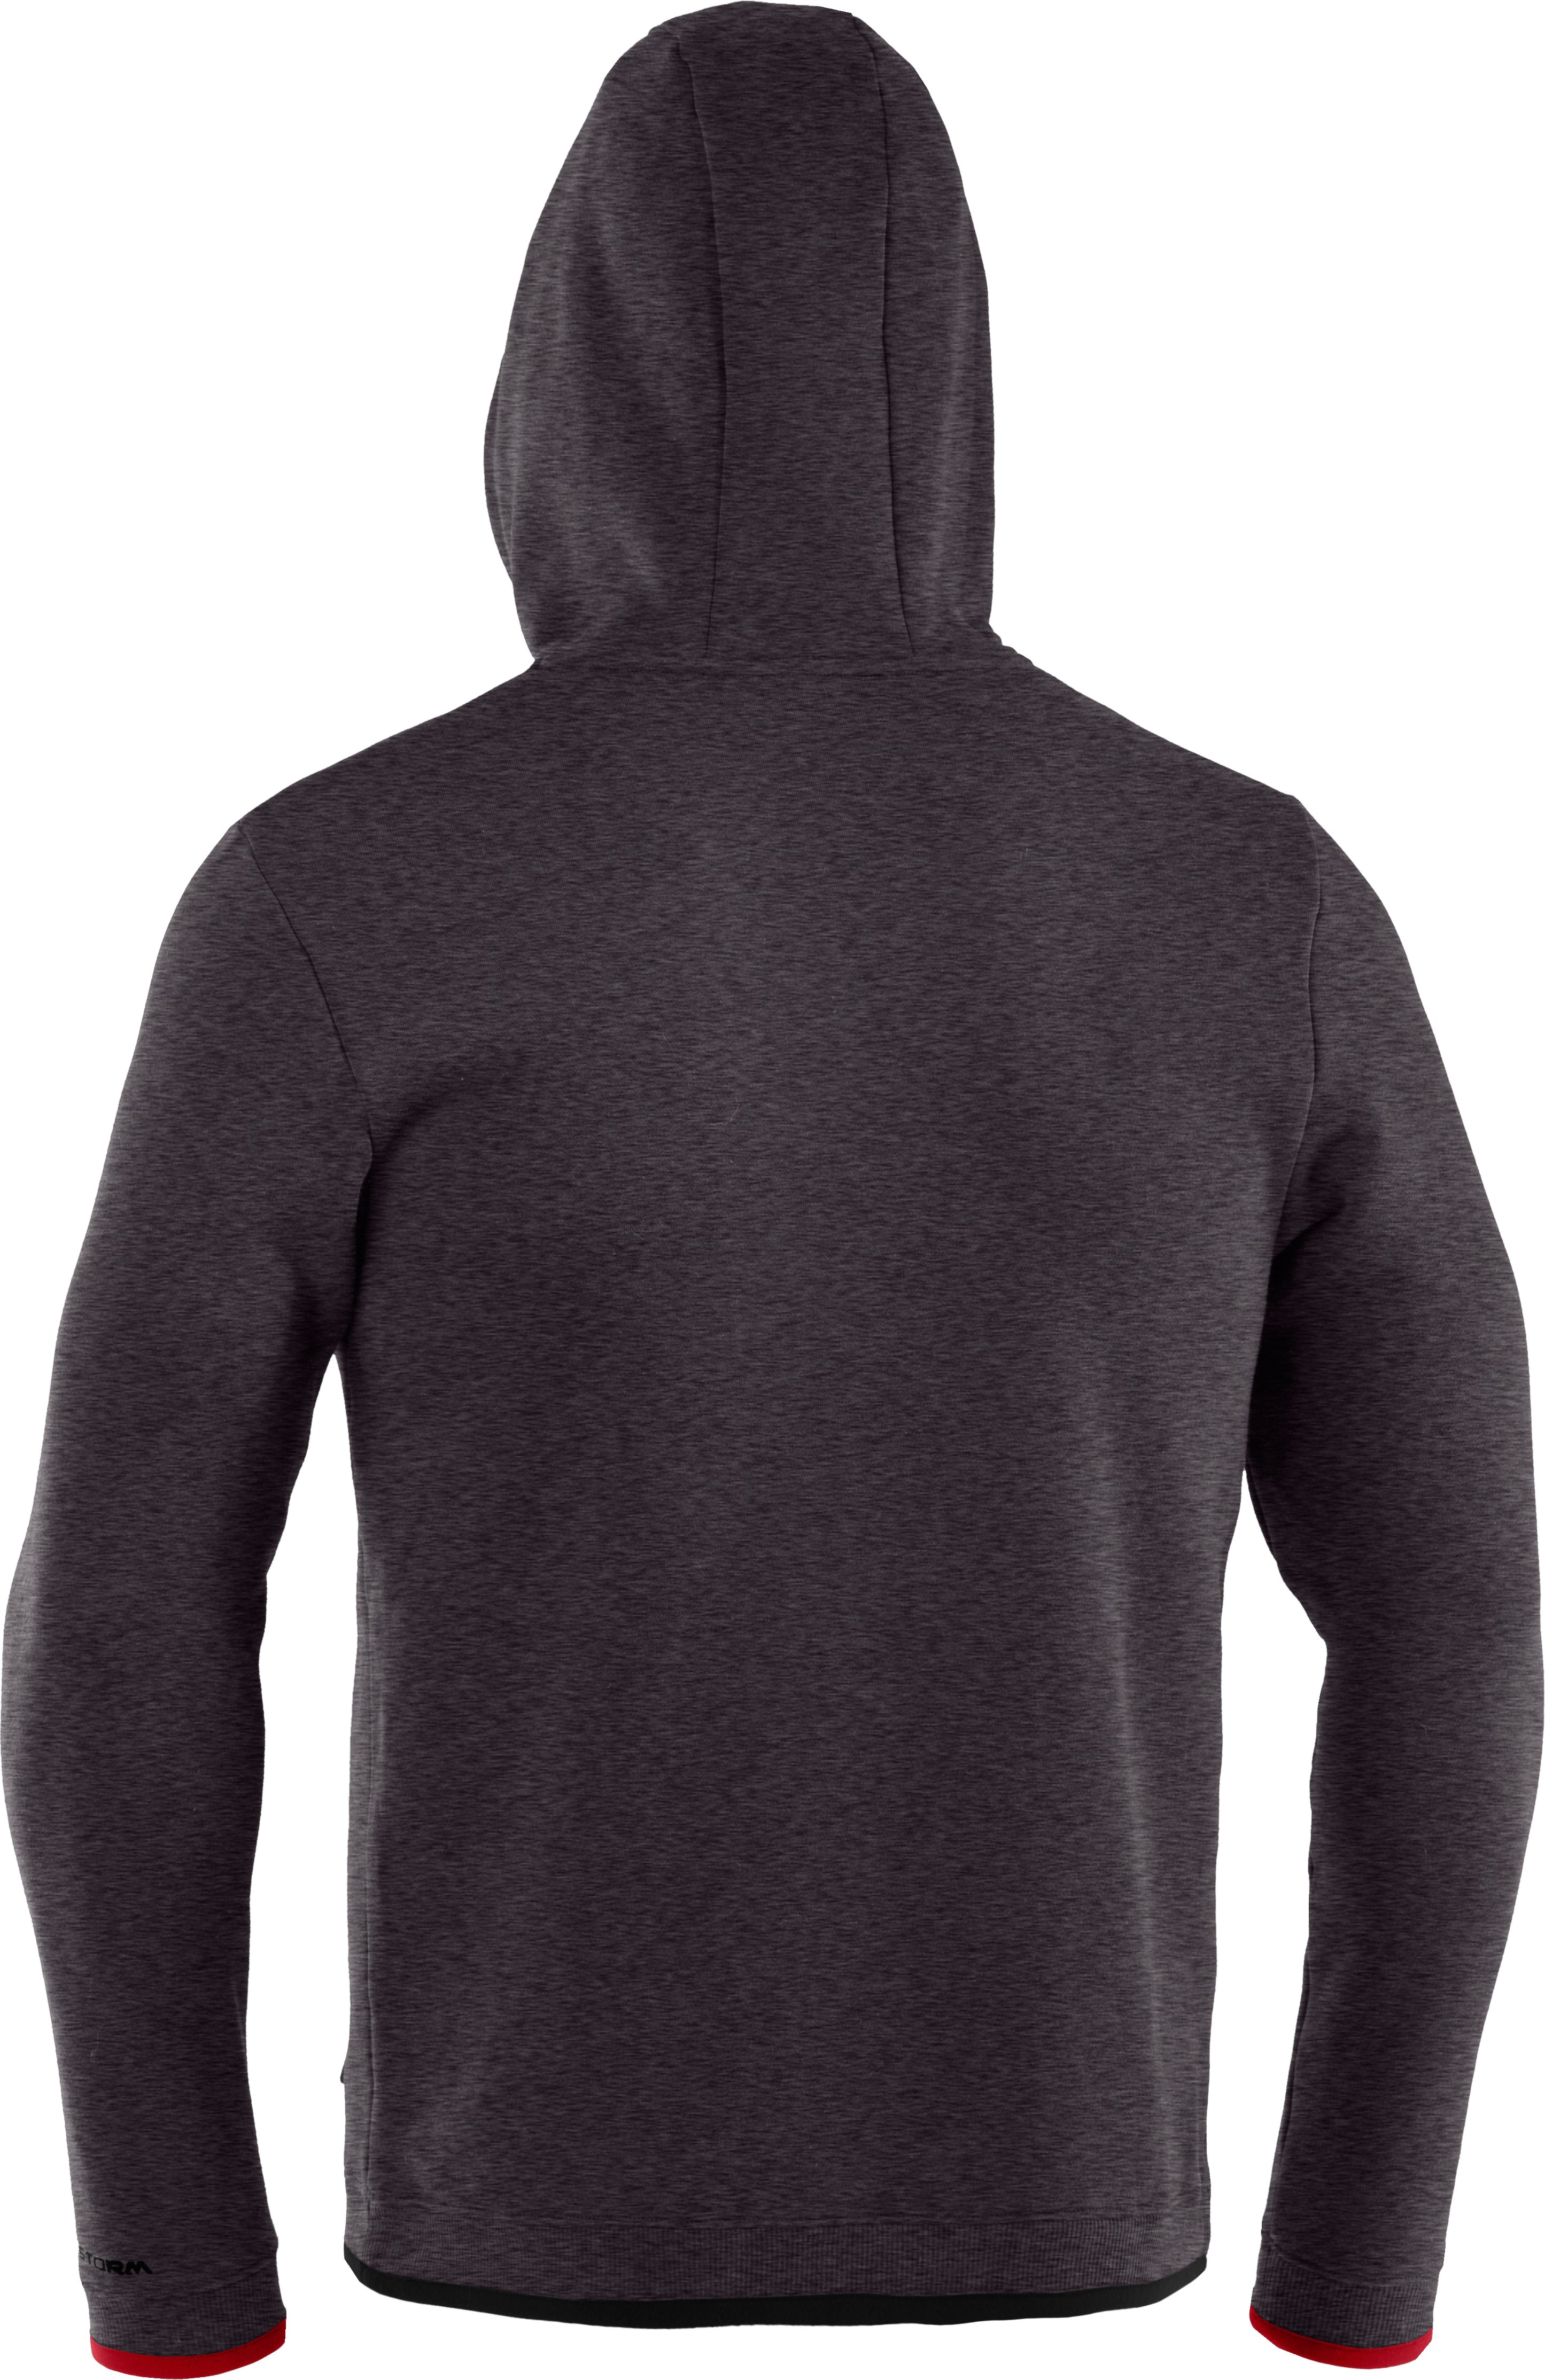 Men's C1N Charged Cotton® Storm Hoodie, Carbon Heather